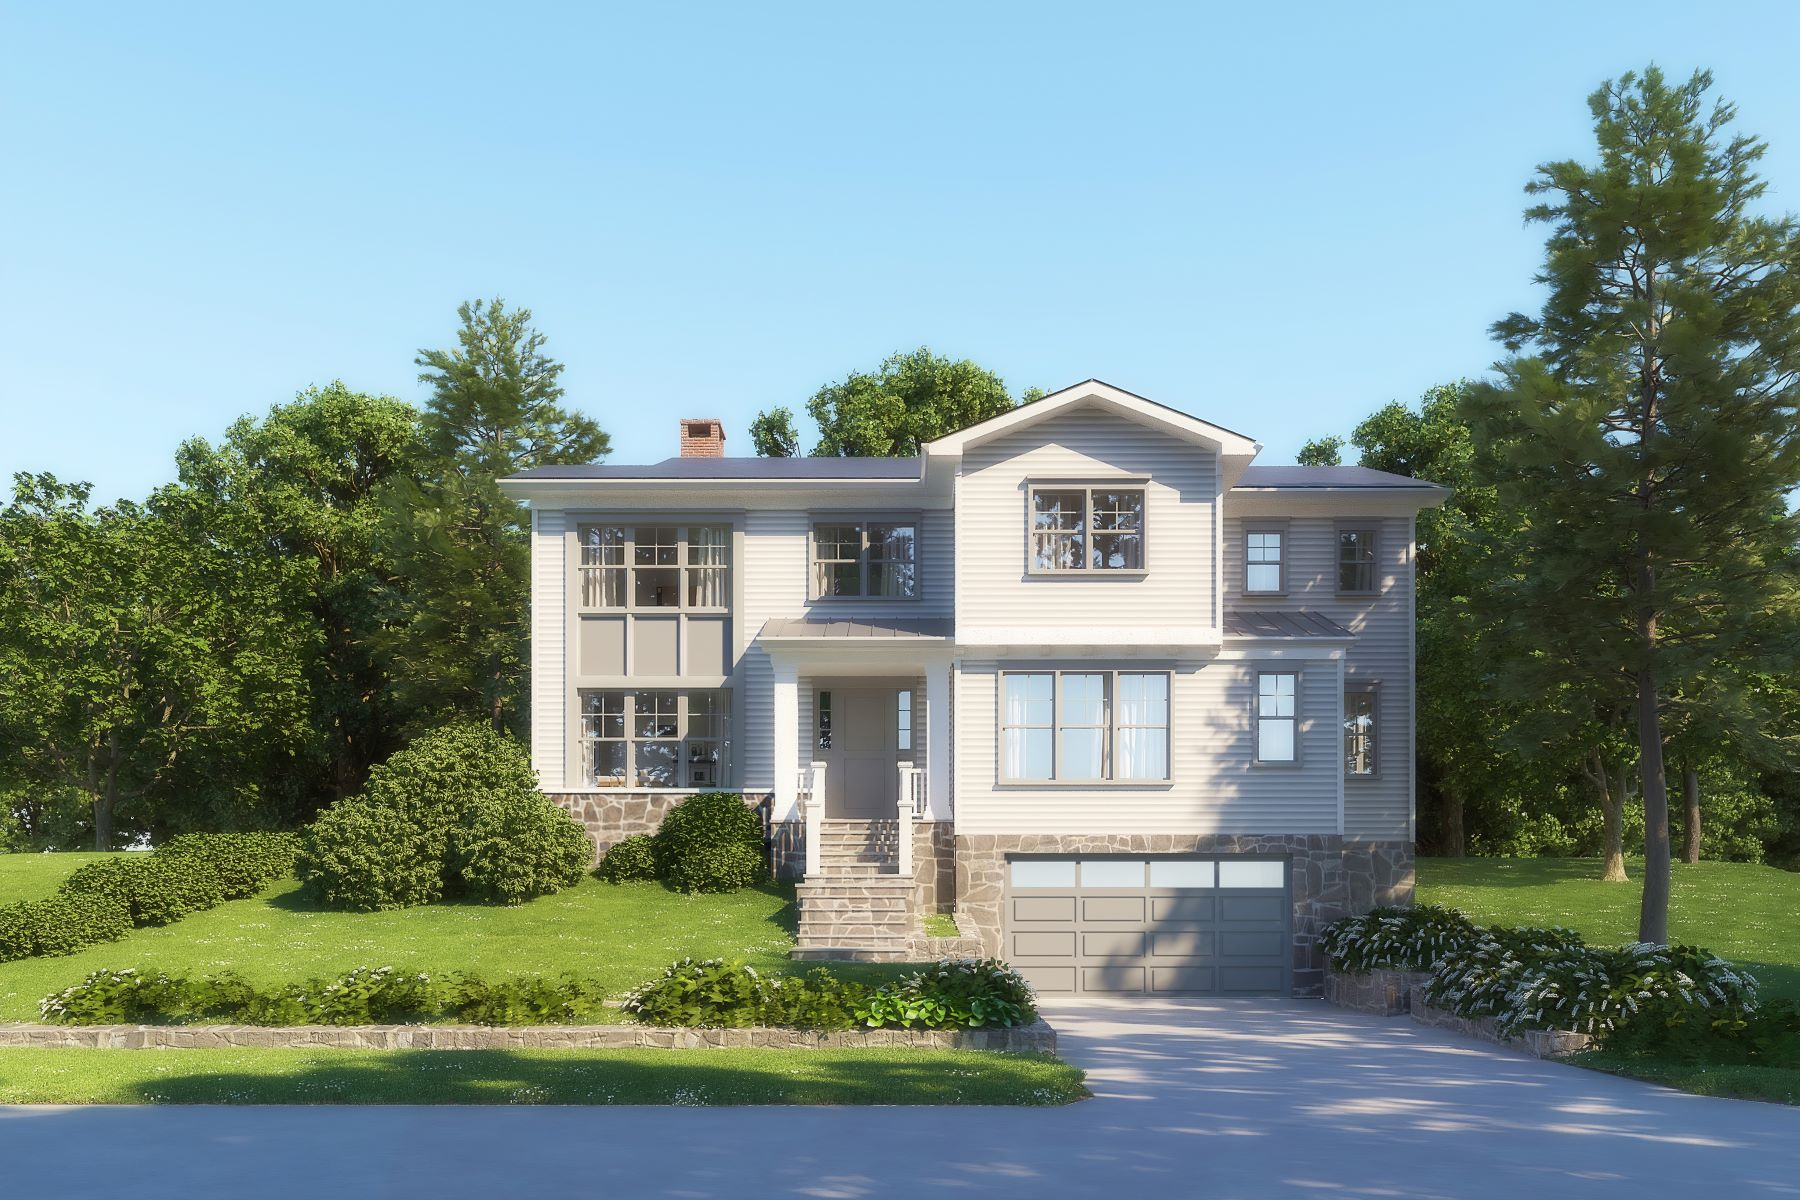 Single Family Homes for Active at 85 Colonial Avenue Larchmont, New York 10538 United States